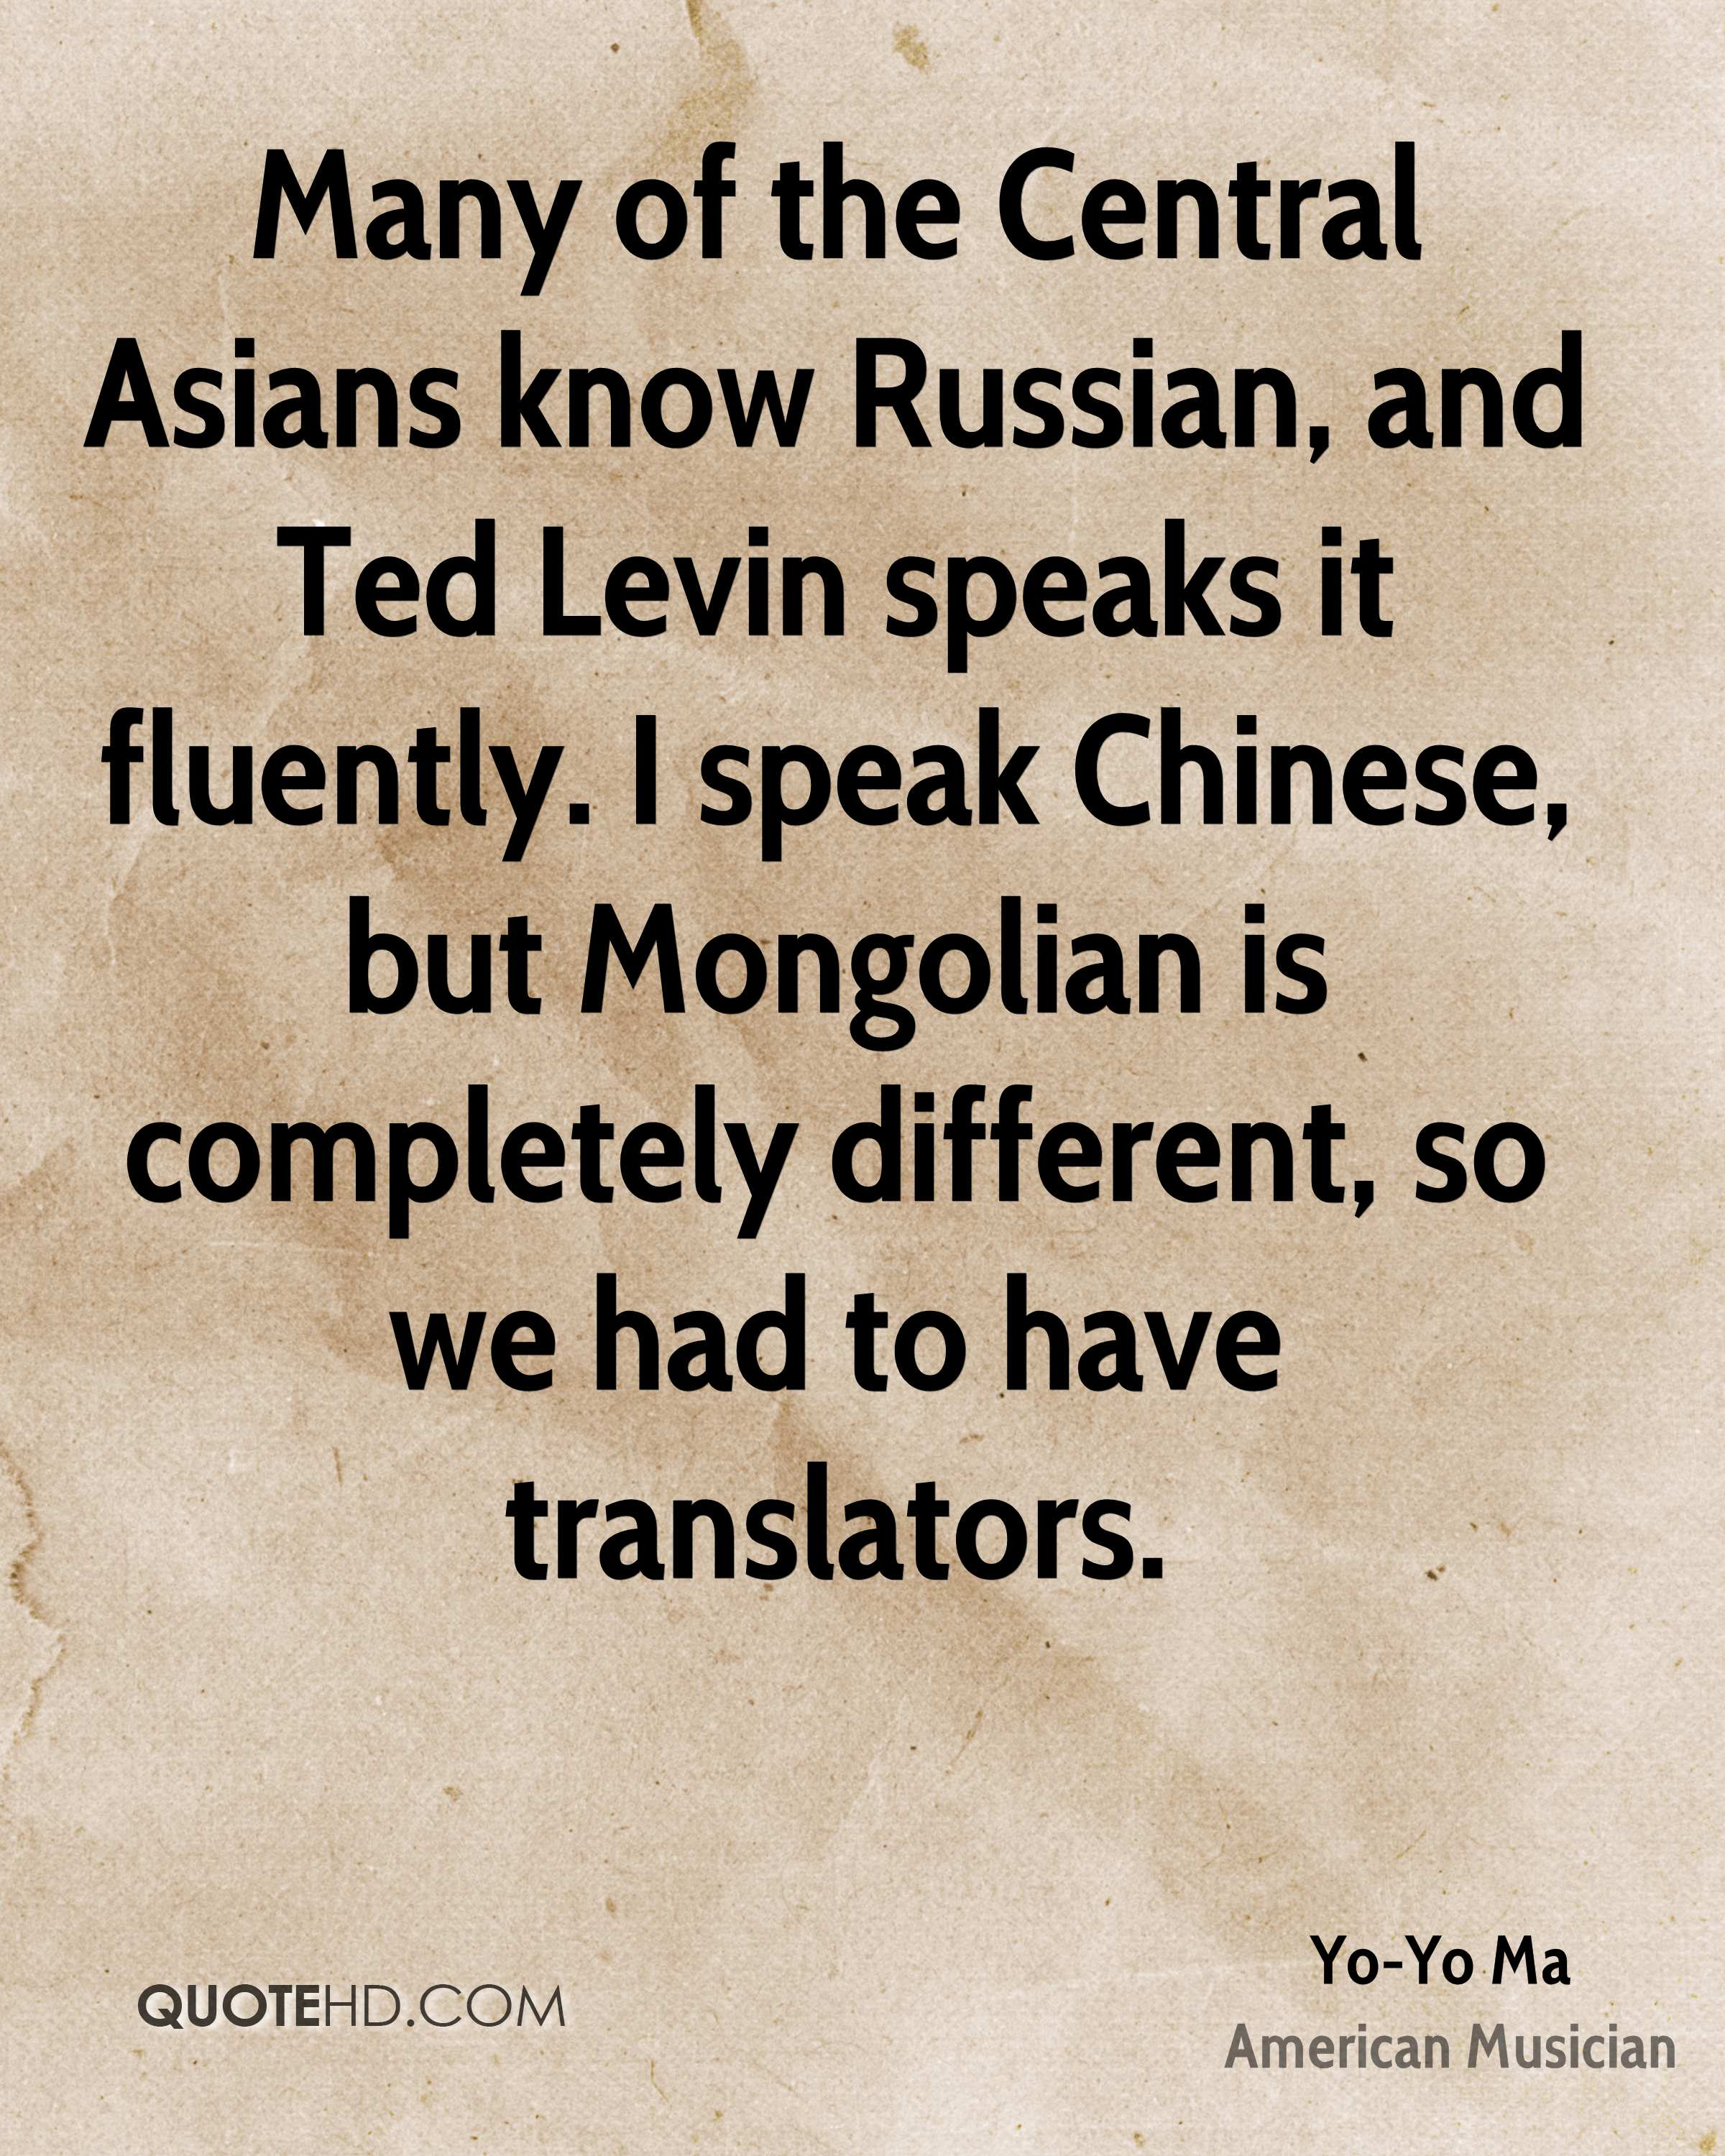 Many of the Central Asians know Russian, and Ted Levin speaks it fluently. I speak Chinese, but Mongolian is completely different, so we had to have translators.